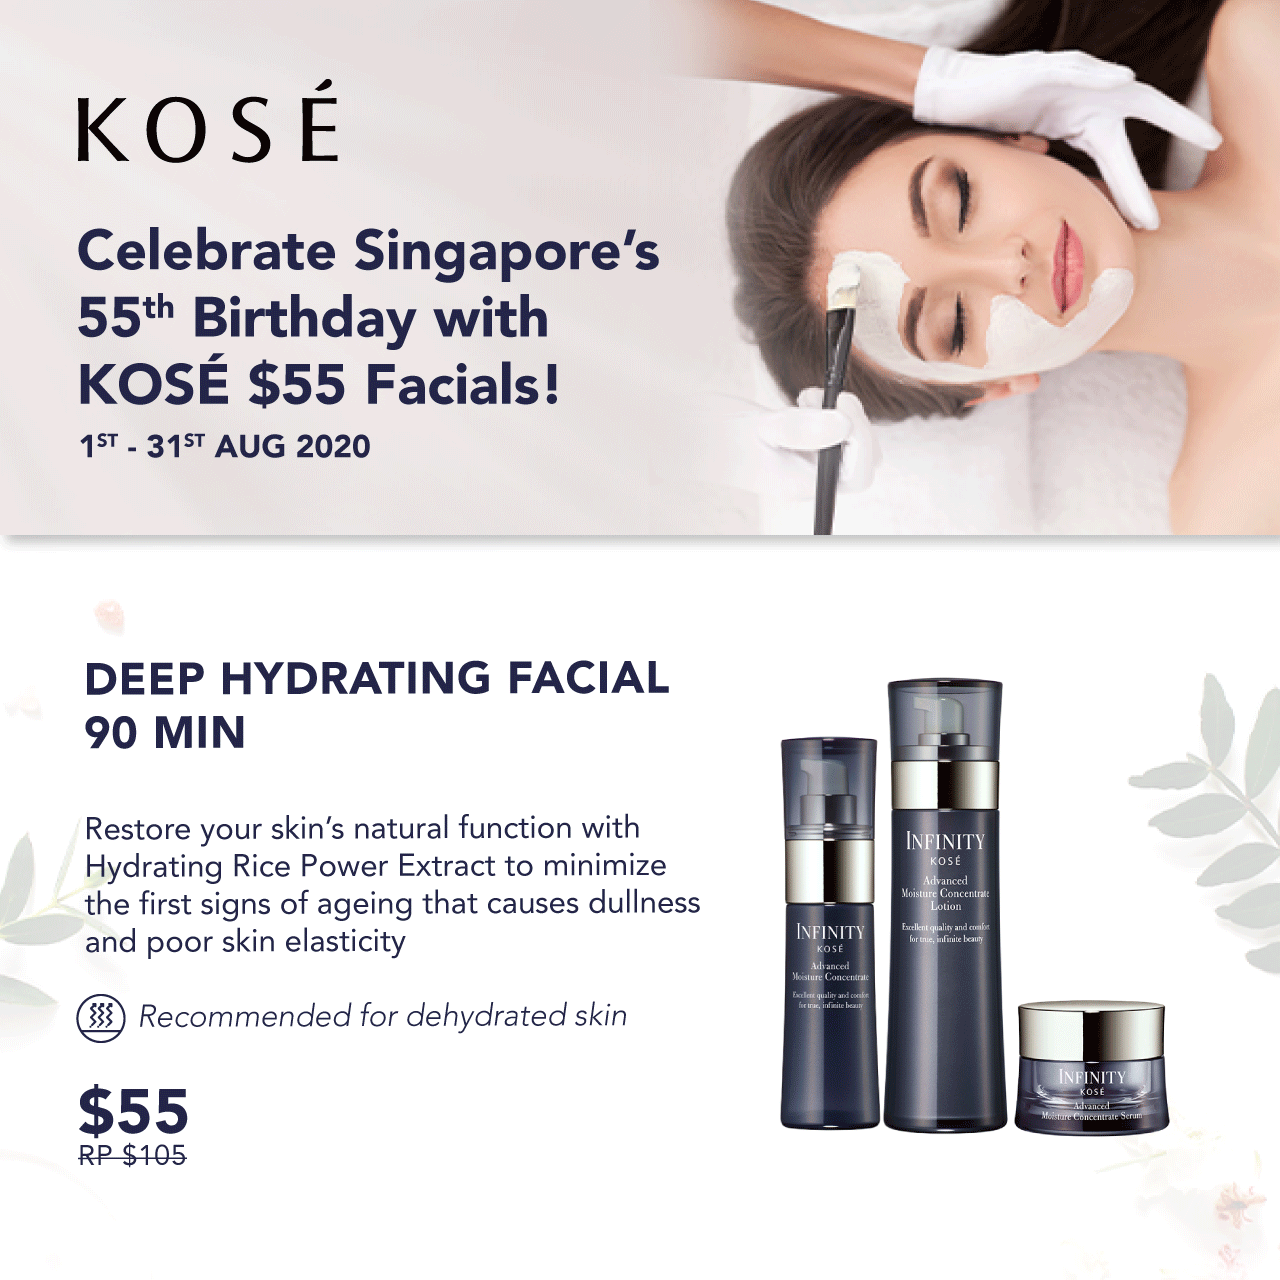 Deep Hydrating Facial SG55